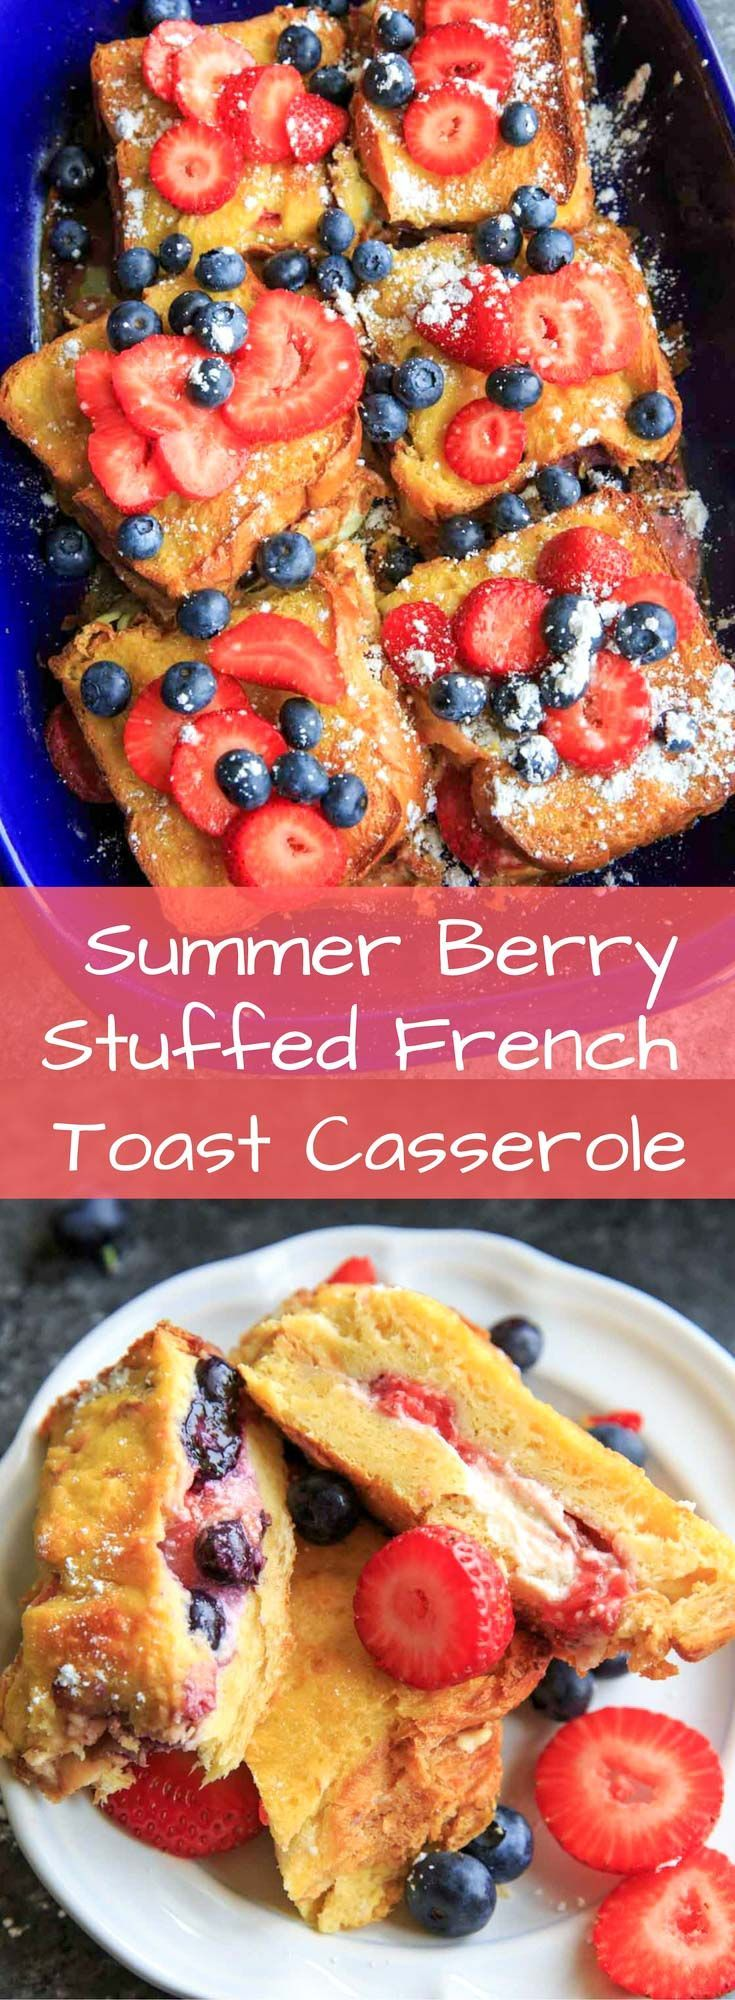 Summer Berry Stuffed French Toast Casserole Bake. A little cream cheese, fruit jam, strawberries and blueberries and topped with more berries! Serve with a sprinkle of powdered sugar and/or maple syrup if desired. A fairly healthy and balanced breakfast or brunch!